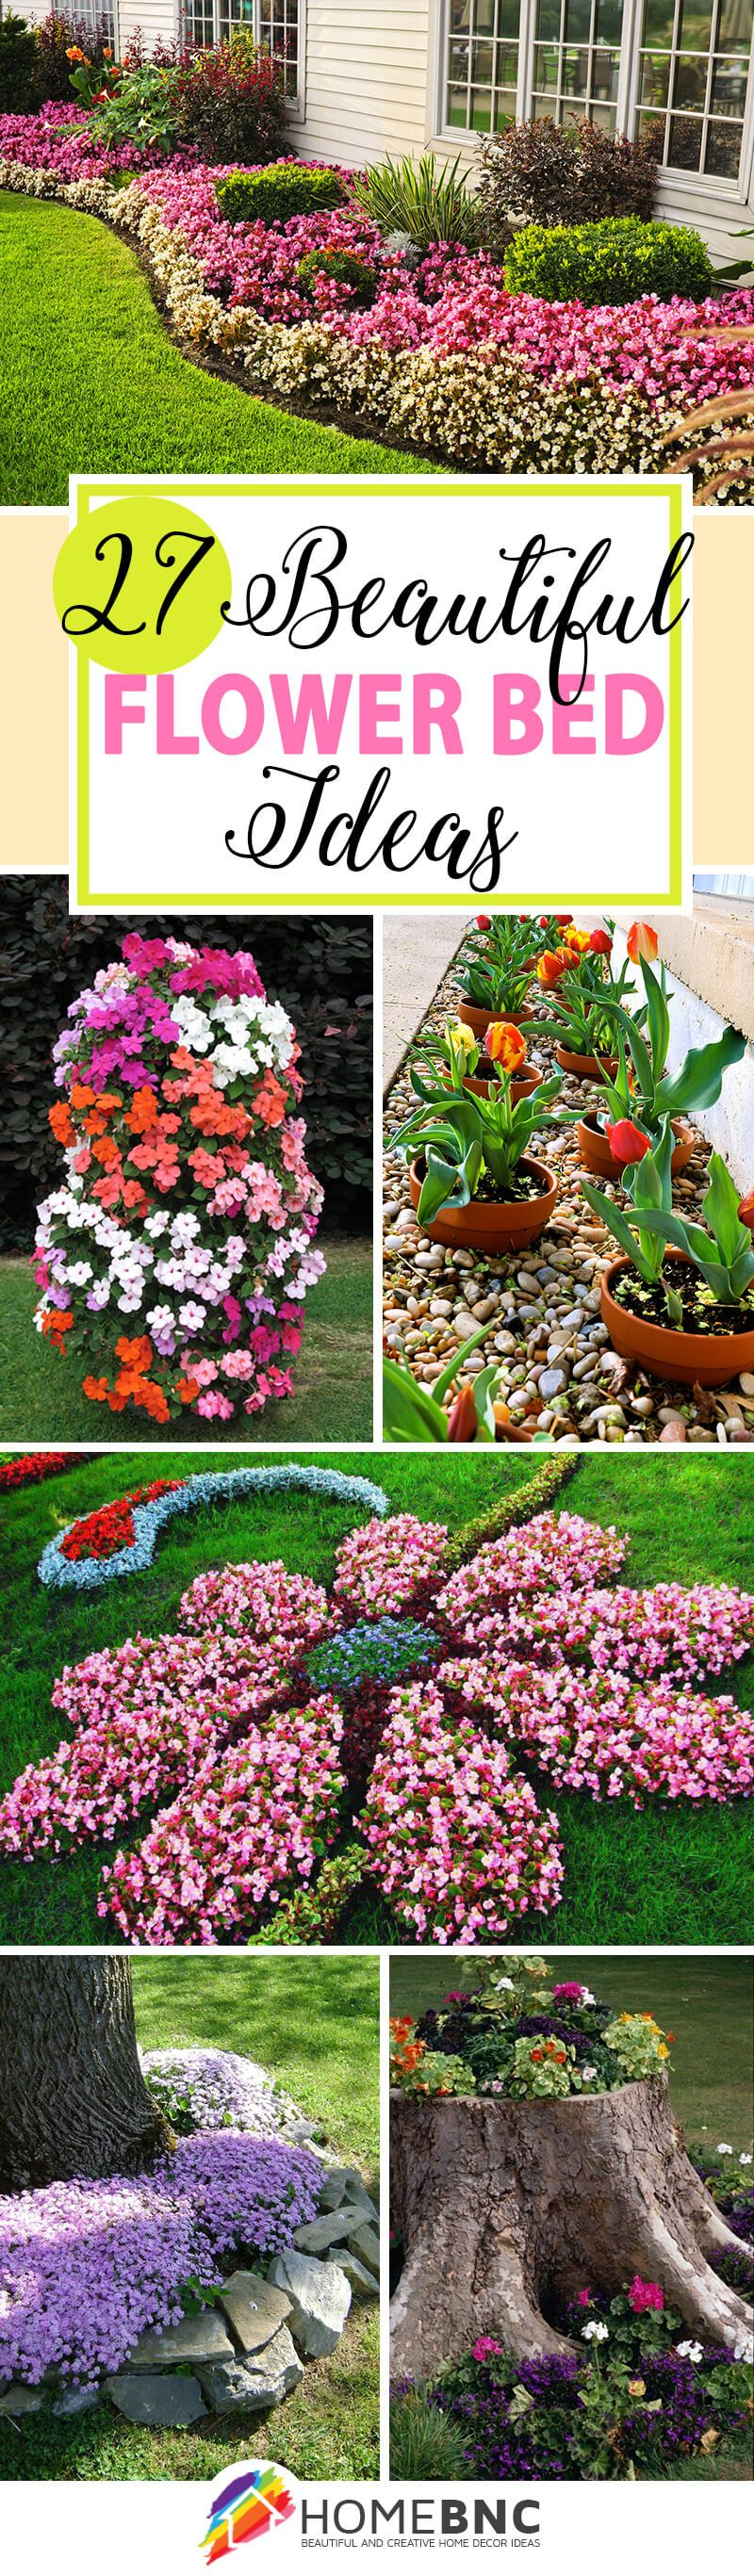 Flower Bed Designs Flower Bed Decor, Ideas For Flower Beds, Flower Bed  Designs,